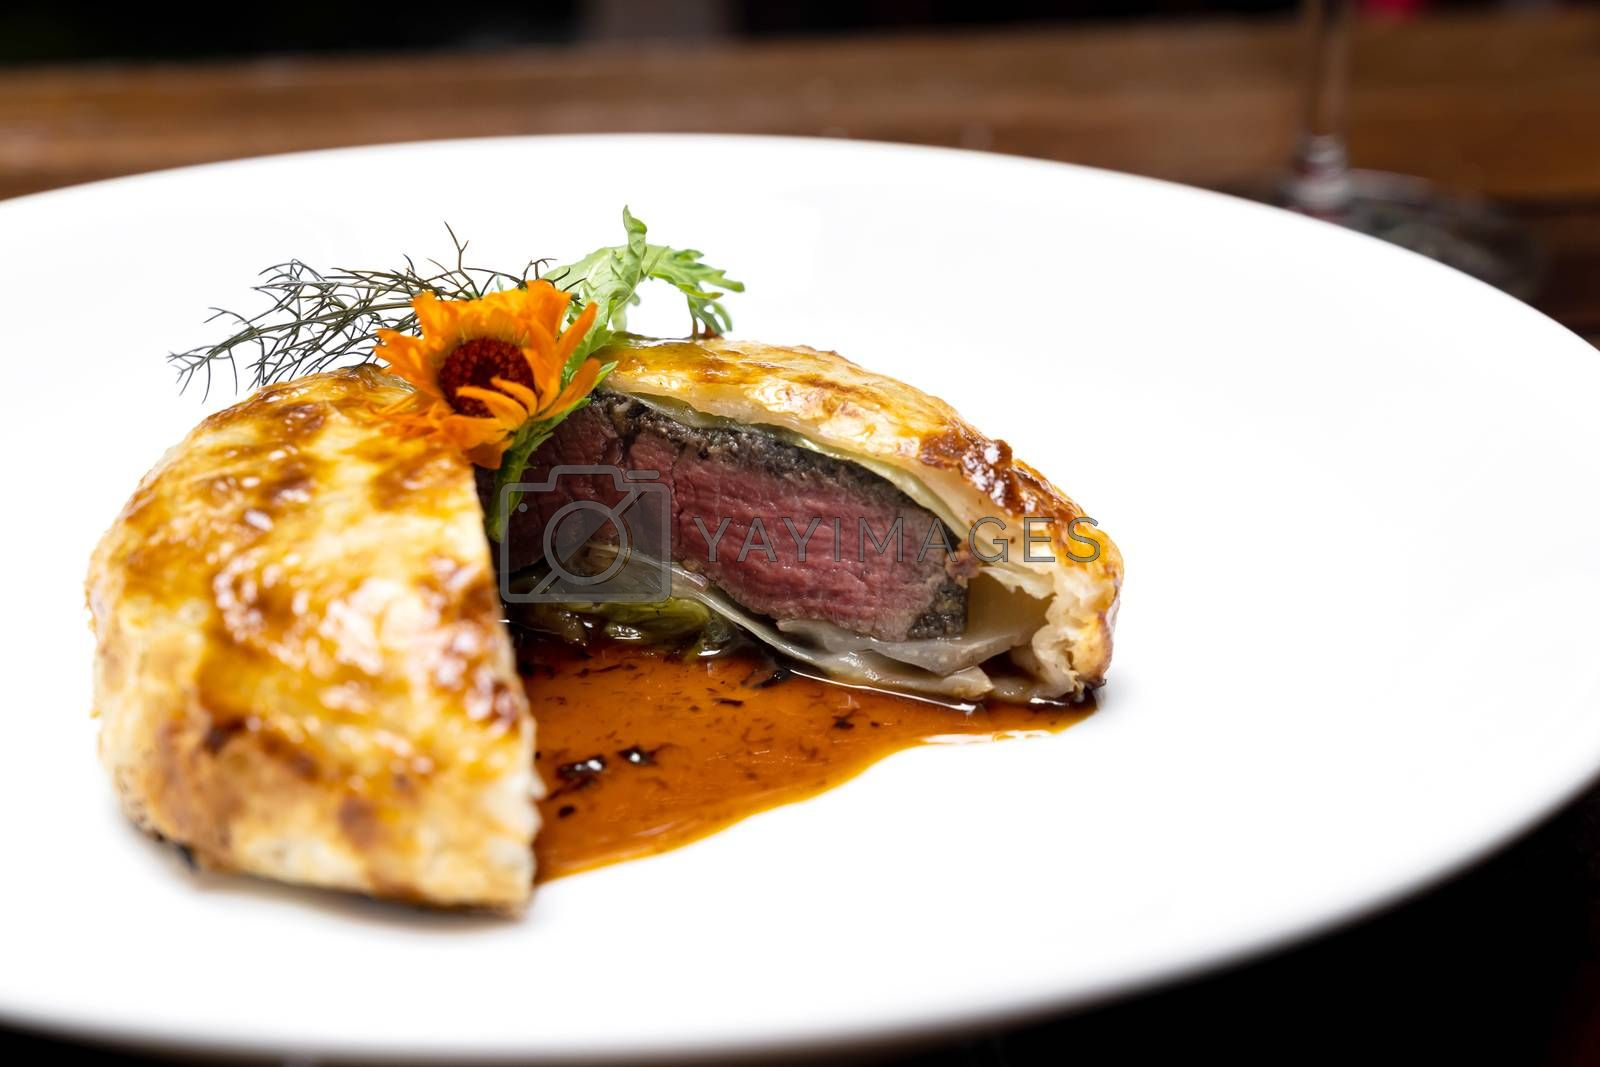 Roasted Beef Wellington with gravy brown savory sauce, international gourmet cuisine of stuff beef meat in baked bread puff. Unising for recipe menu pf food and drink industry.